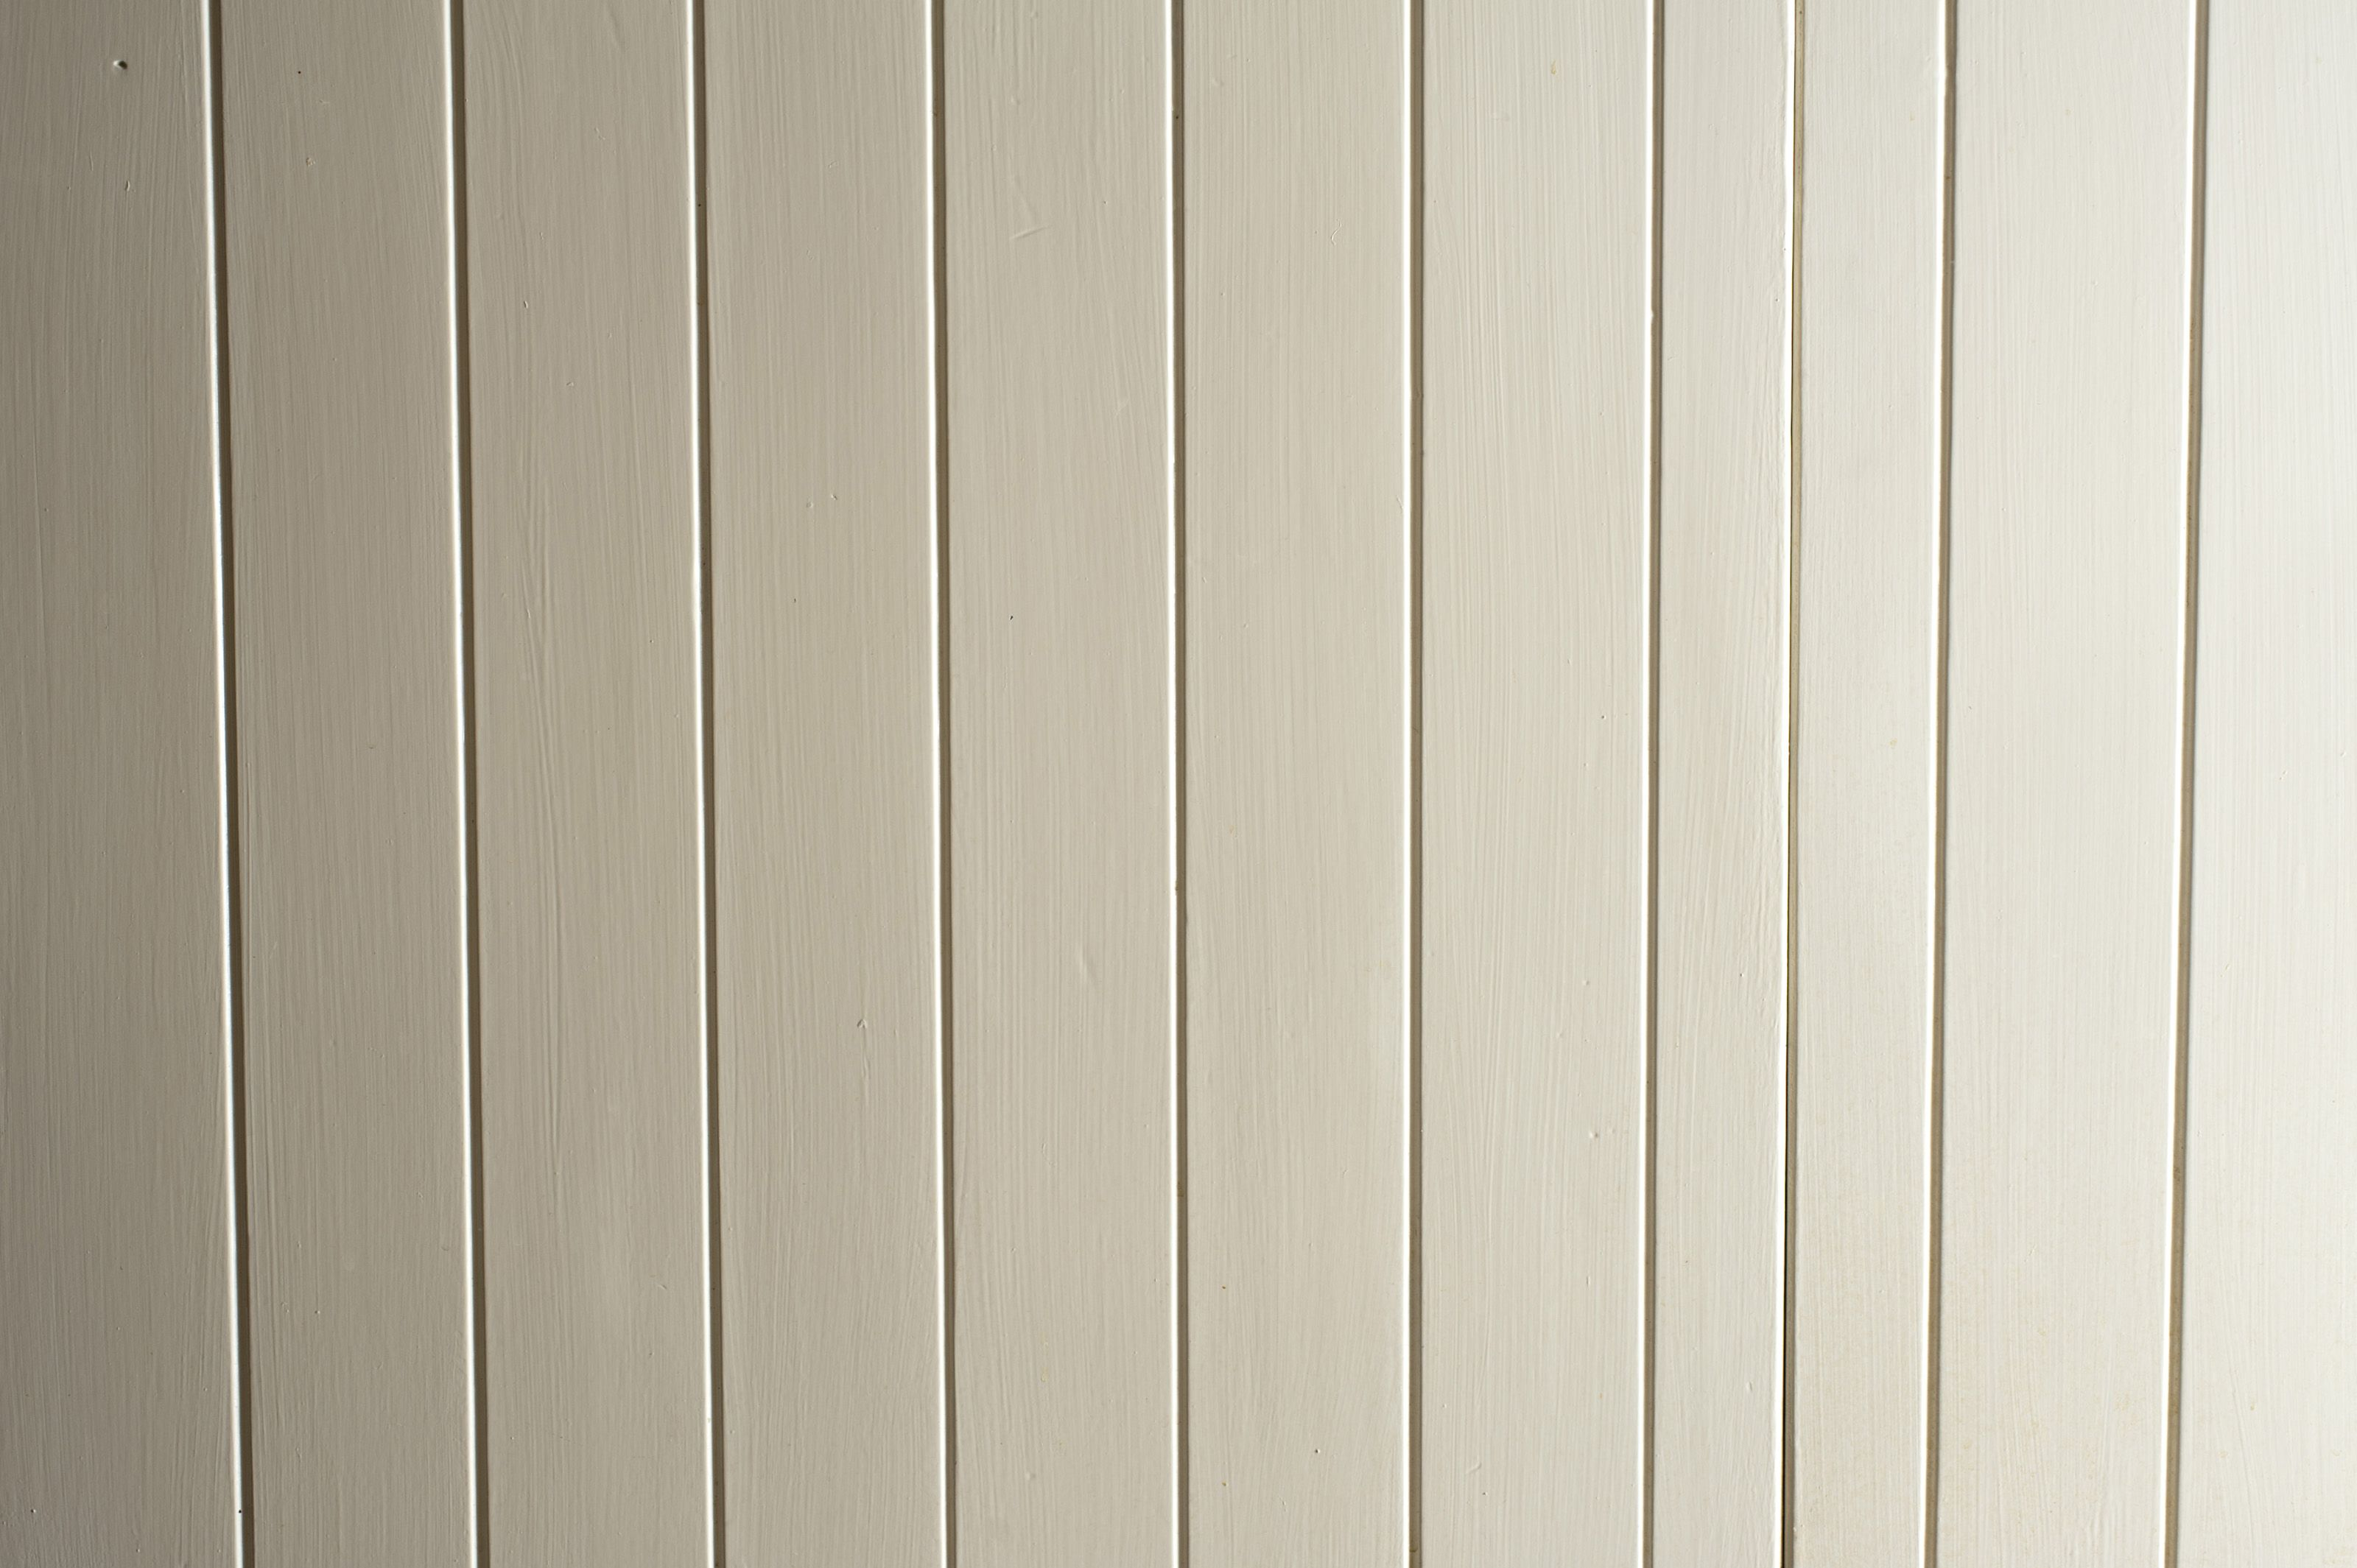 Pin by lisa jones on Remodeling | Wood panel walls, Tongue